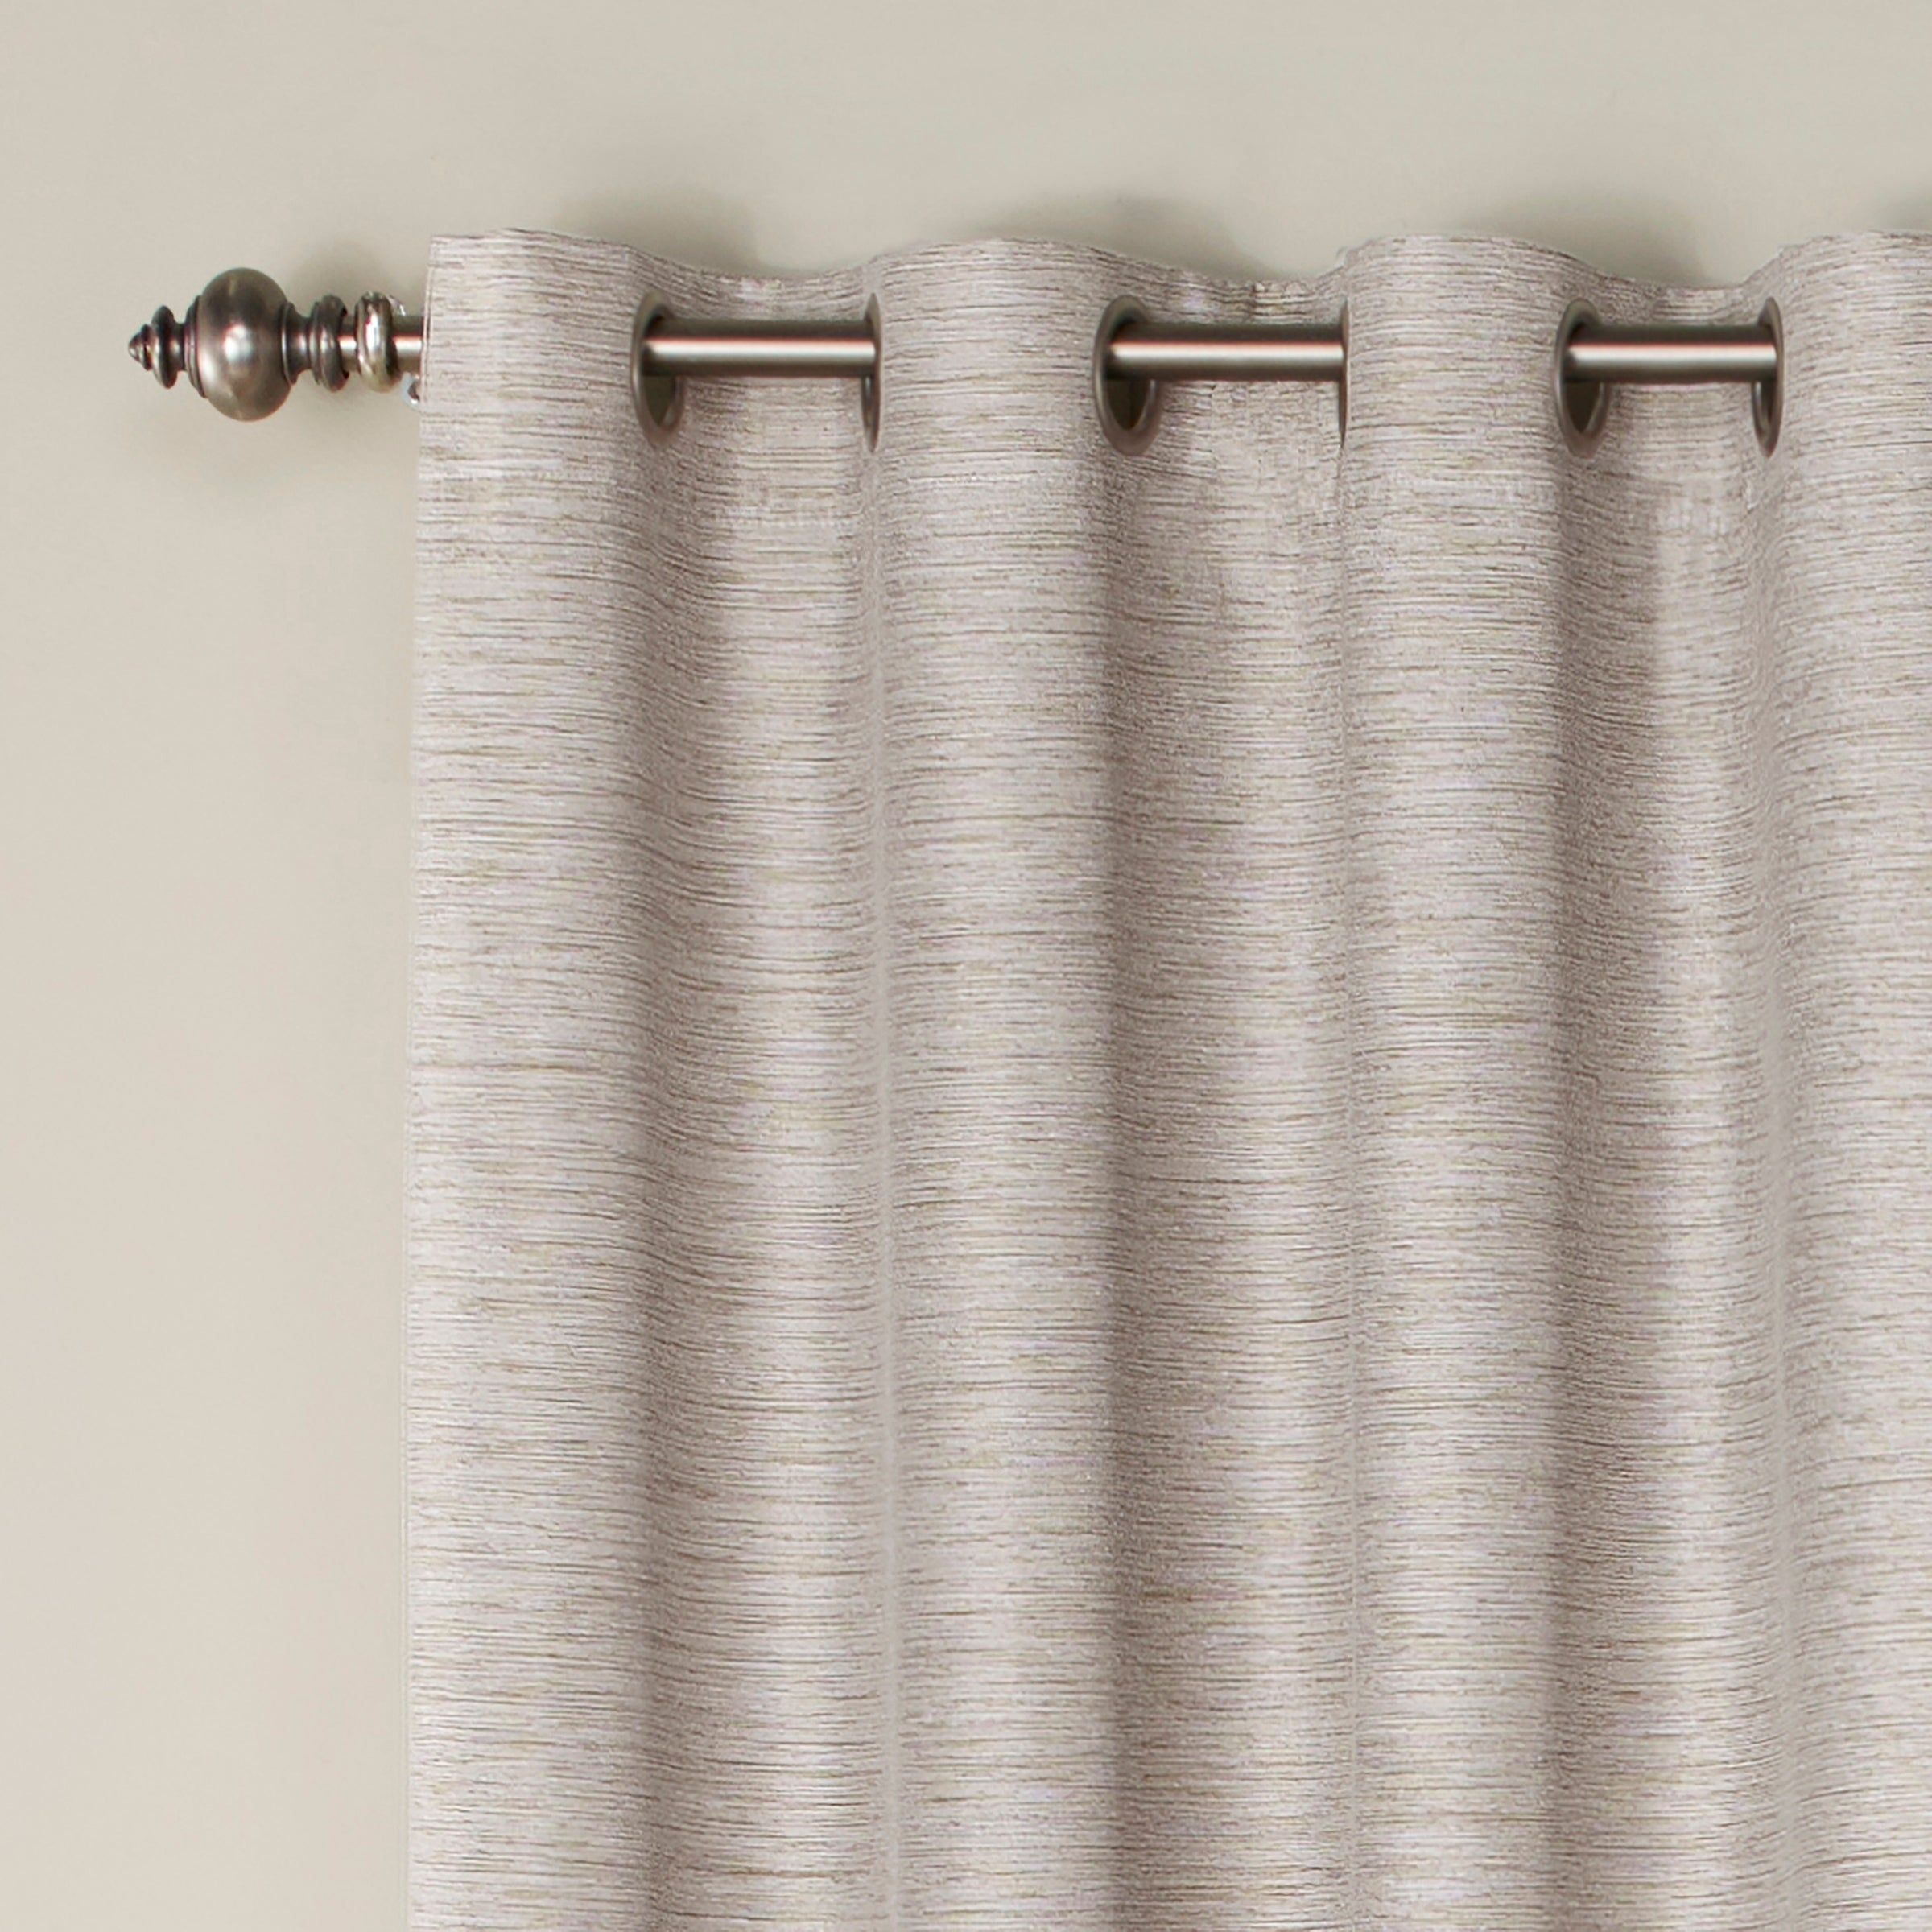 Eclipse Newport Blackout Curtain Panel – 52x95 Regarding Eclipse Newport Blackout Curtain Panels (View 2 of 20)